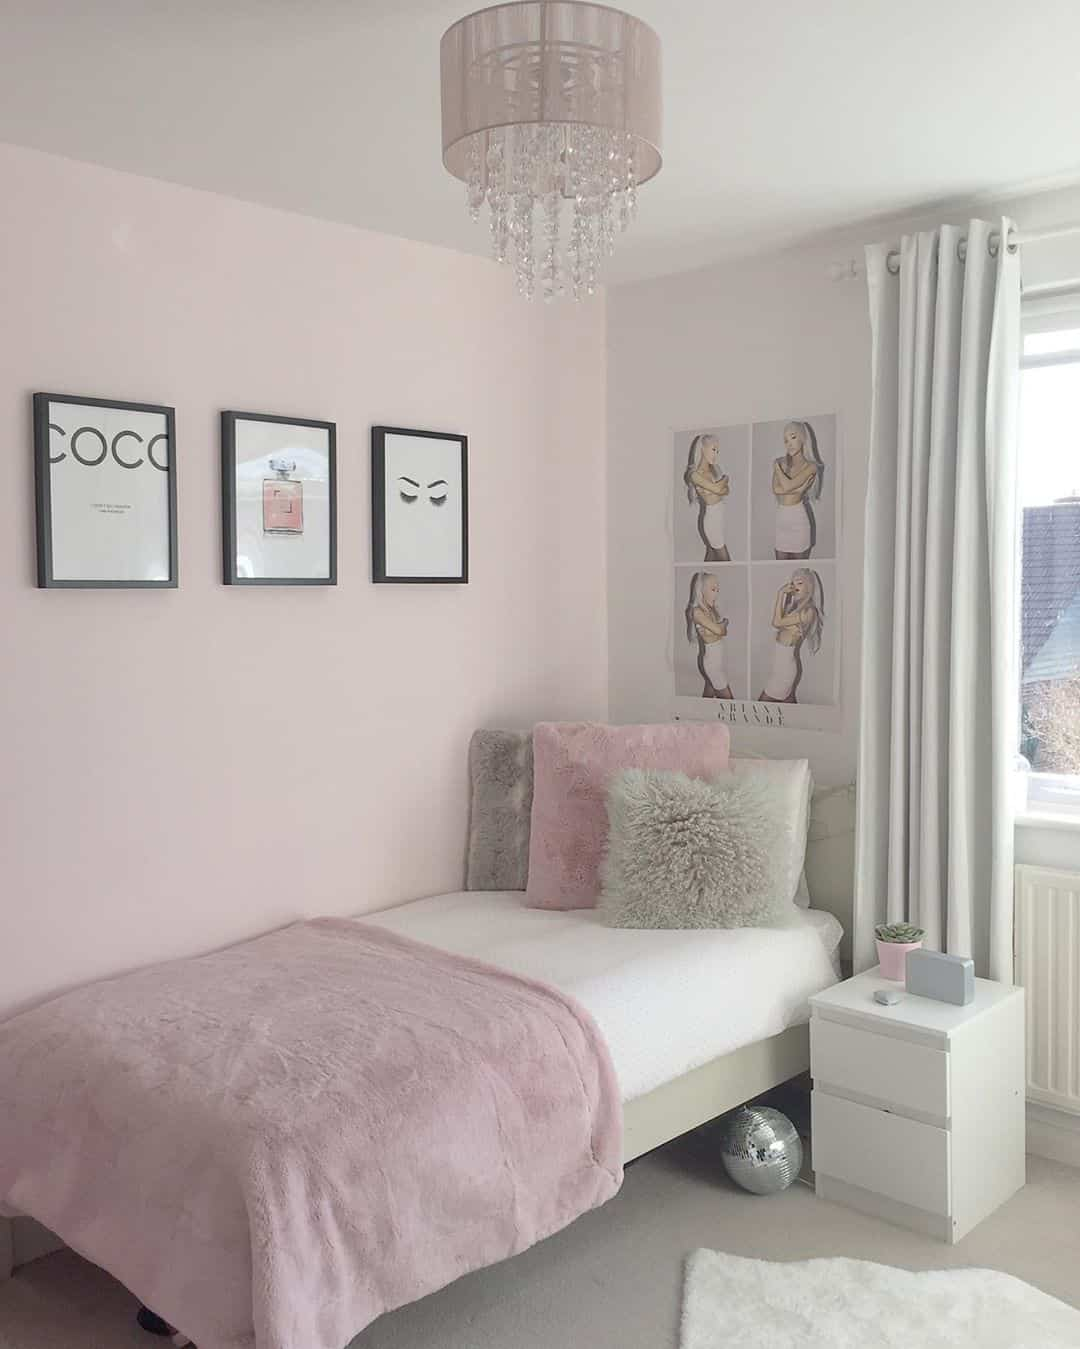 Teen room 2020: Newest ideas for teen room design ( 32 ... on Rooms For Teenagers  id=90559